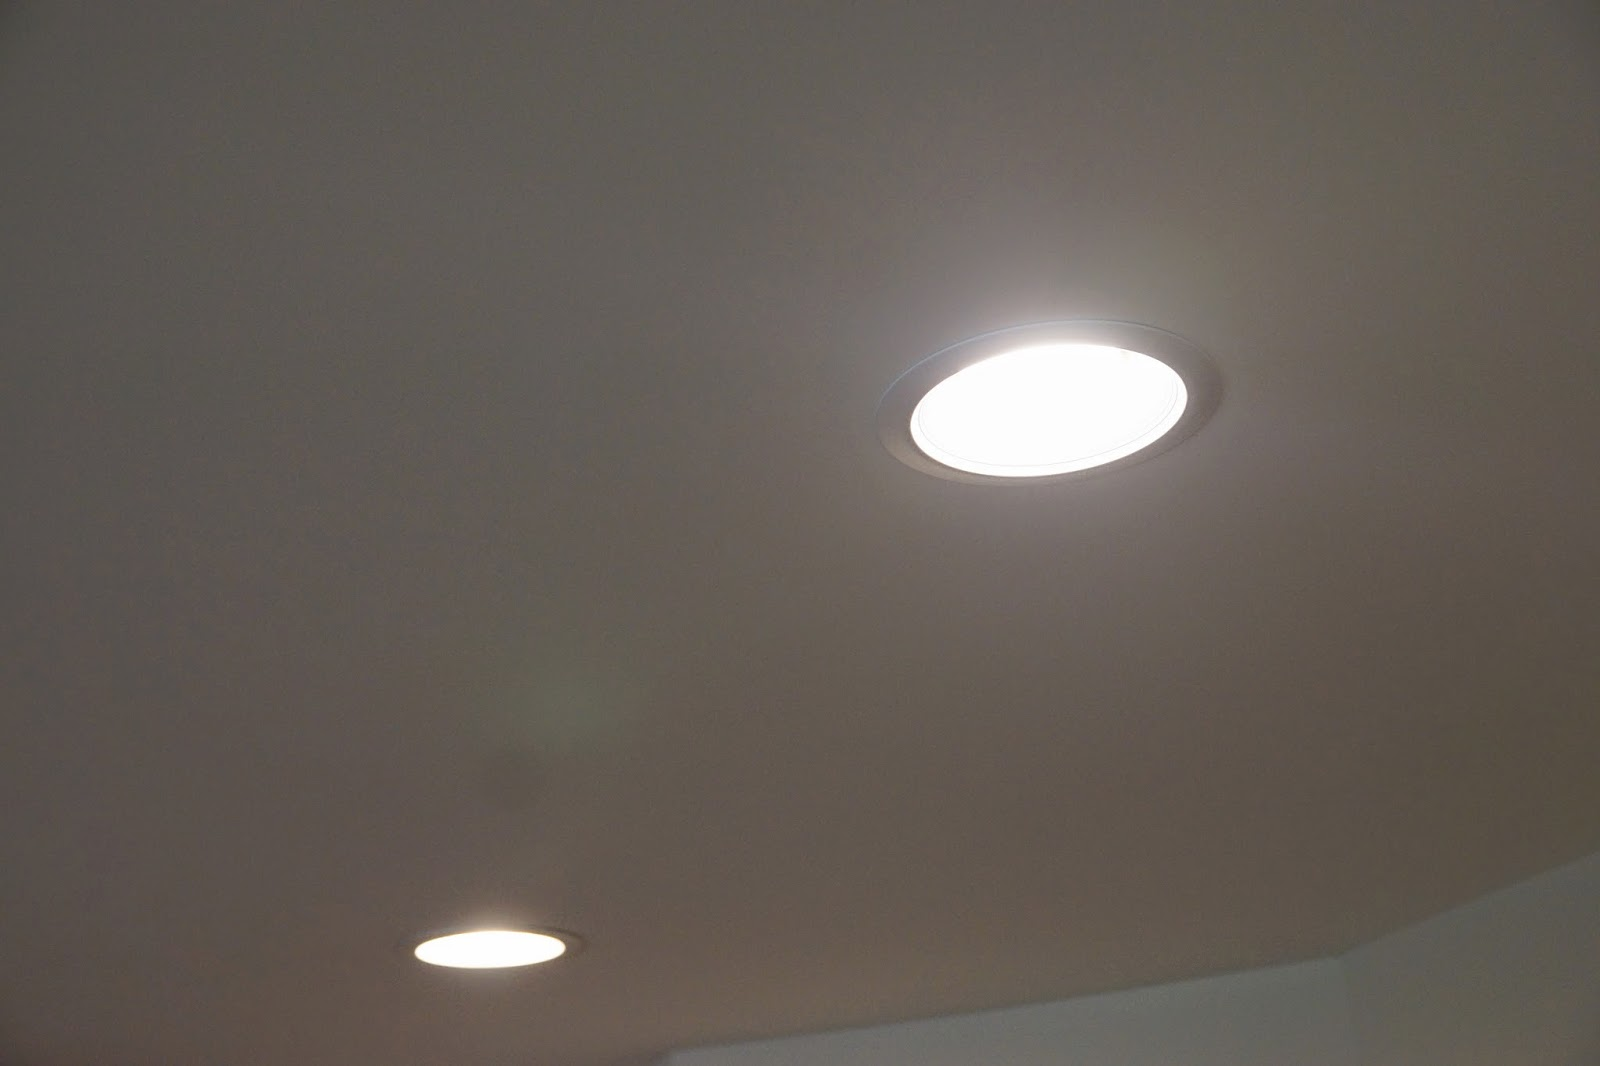 A picture of the recessed lighting in the kitchen